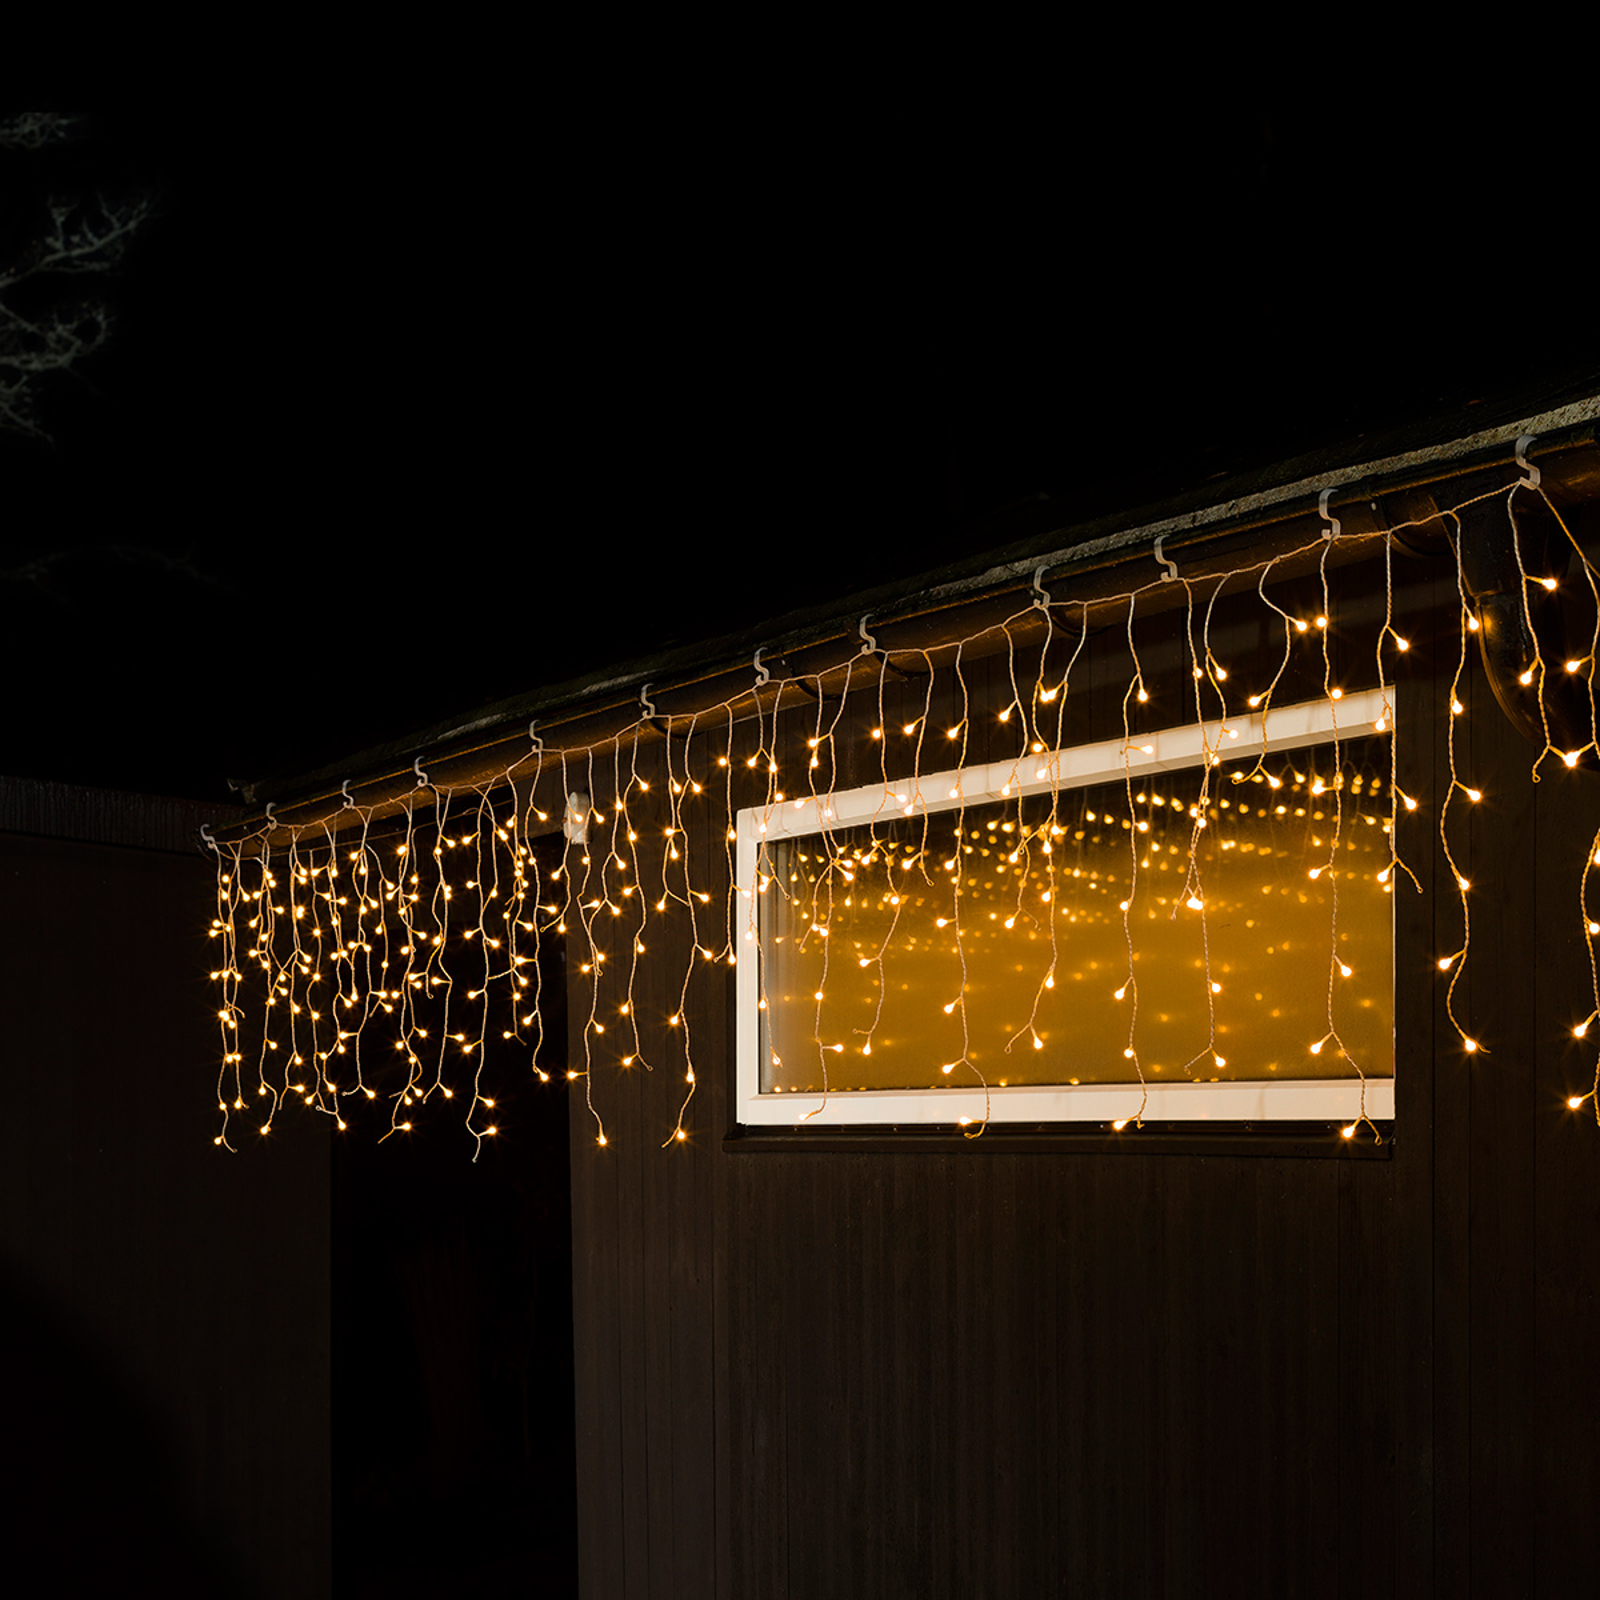 Tenda luminosa a LED da esterni, 400 luci